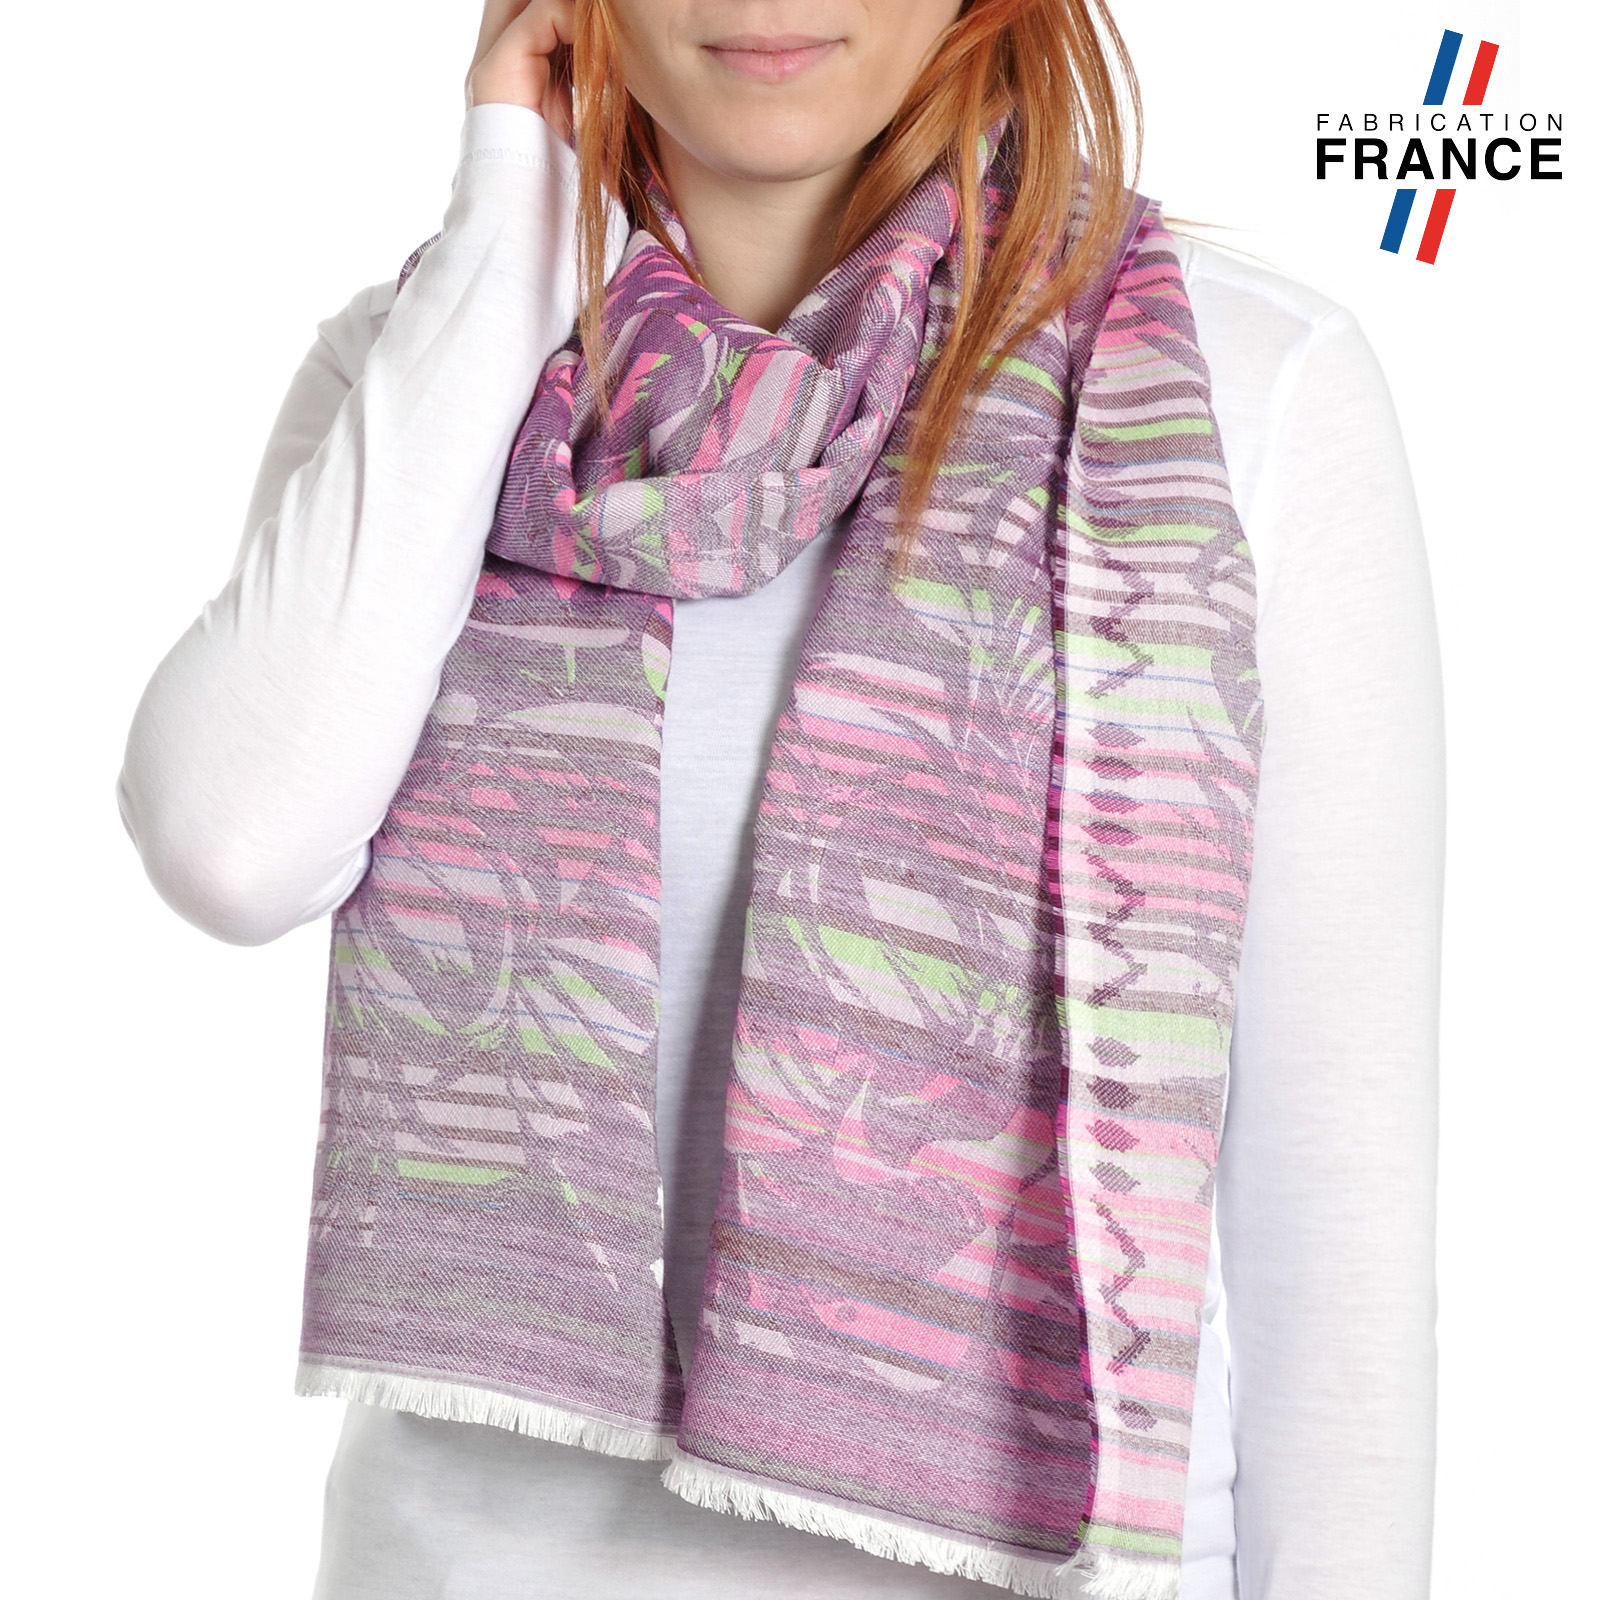 At-04213-VF16-P-LB_FR-echarpe-legere-violet-glycine-qualicoq